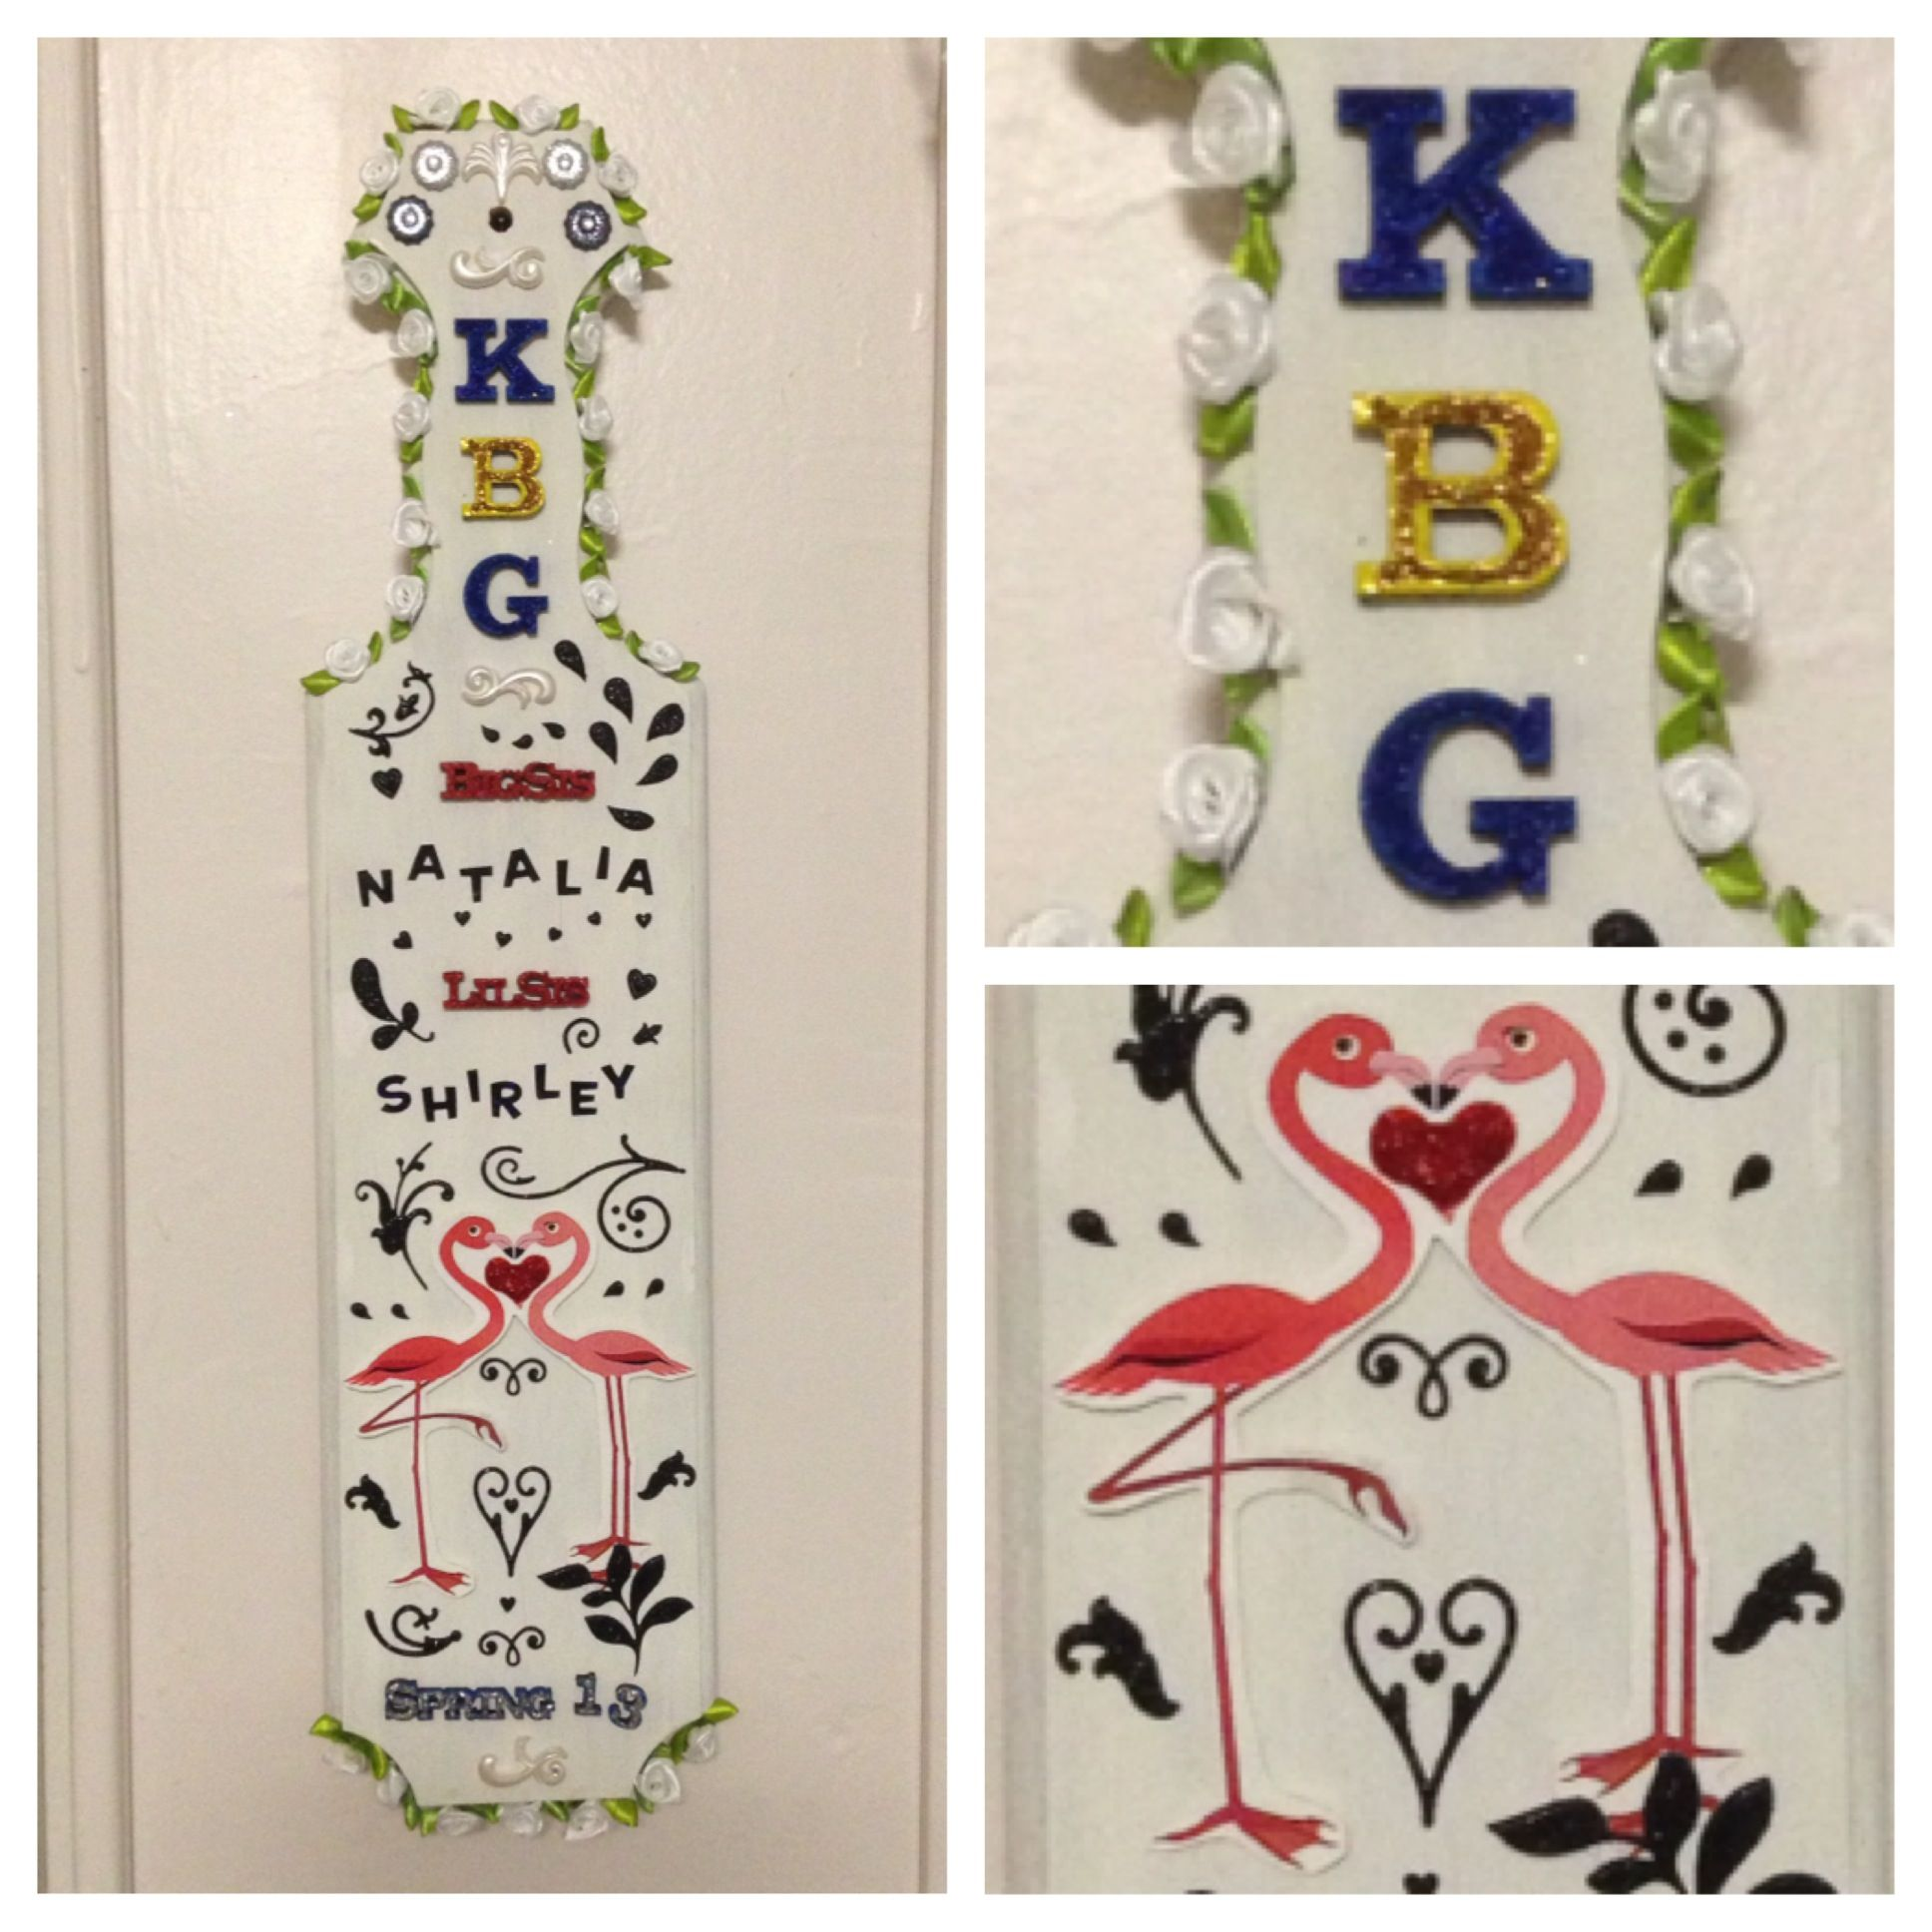 Paddles by Alpha Beta Chapter of KBG